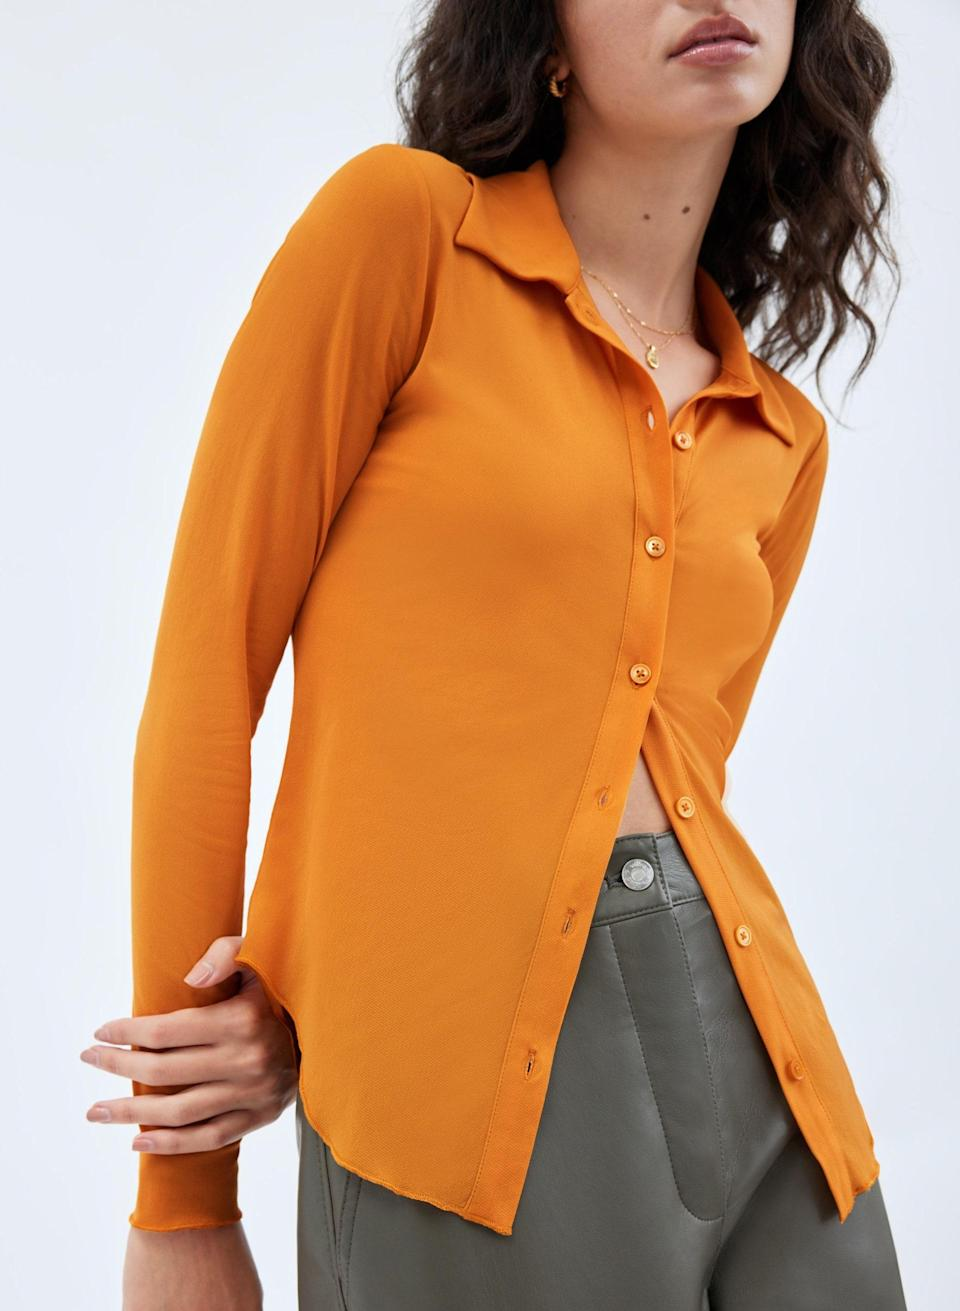 """There's nothing wrong with looking like a pumpkin-spice dream now that it's officially fall. $50, Aritzia. <a href=""""https://www.aritzia.com/us/en/product/charm-longsleeve/78997.html?dwvar_78997_color=22252"""" rel=""""nofollow noopener"""" target=""""_blank"""" data-ylk=""""slk:Get it now!"""" class=""""link rapid-noclick-resp"""">Get it now!</a>"""